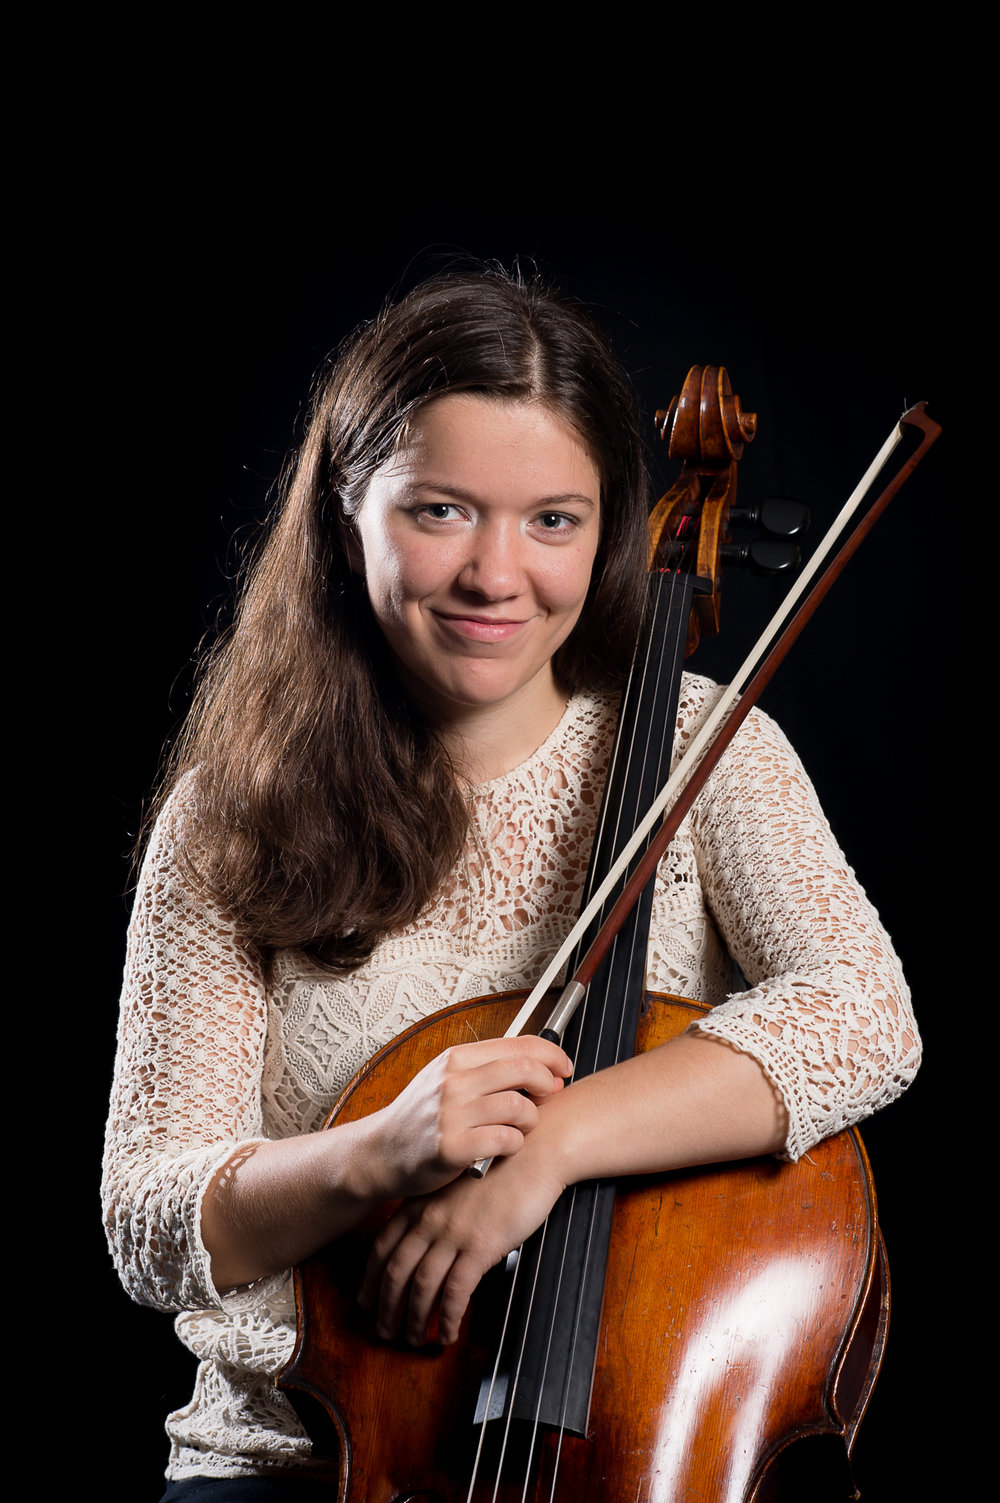 Anastasia Feruleva  - The cellist Anastasia Feruleva was born in 1992 in Arkhangelsk, Russia. She has performedin her native country from early childhood on, and her concert engagements have taken her since also to Norway, Finland, Germany, Italy, France, Belgium, Romania and the Netherlands, where she has finished her bachelor degree with Larissa Groeneveld at the RoyalConservatoire in The Hague with 10 with distinction. In February 2018 she has finished her master studies cum laude with Troels Svane at the Hochshule für Musik Hanns Eisler inBerlin.As a soloist, Anastasia has performed works of Dvorak, Lalo, Tchaikovsky, Brahms and Vivaldi with orchestras in the Netherlands,Germany and Russia. Anastasia has been awarded prizes in various competitions from a very early age. Recently she has been awarded the second prize and a prize for the best interpretation of thecommissioned work on the National Cello Biennale competition in Amsterdam. . She has gained her orchestra experience with the Royal Concertgebouw Orchestra and the Netherlands Philharmonic/Netherlands Chamber Orchestra.She plays a cello by Rombouts (1710), which has been given to her on loan.